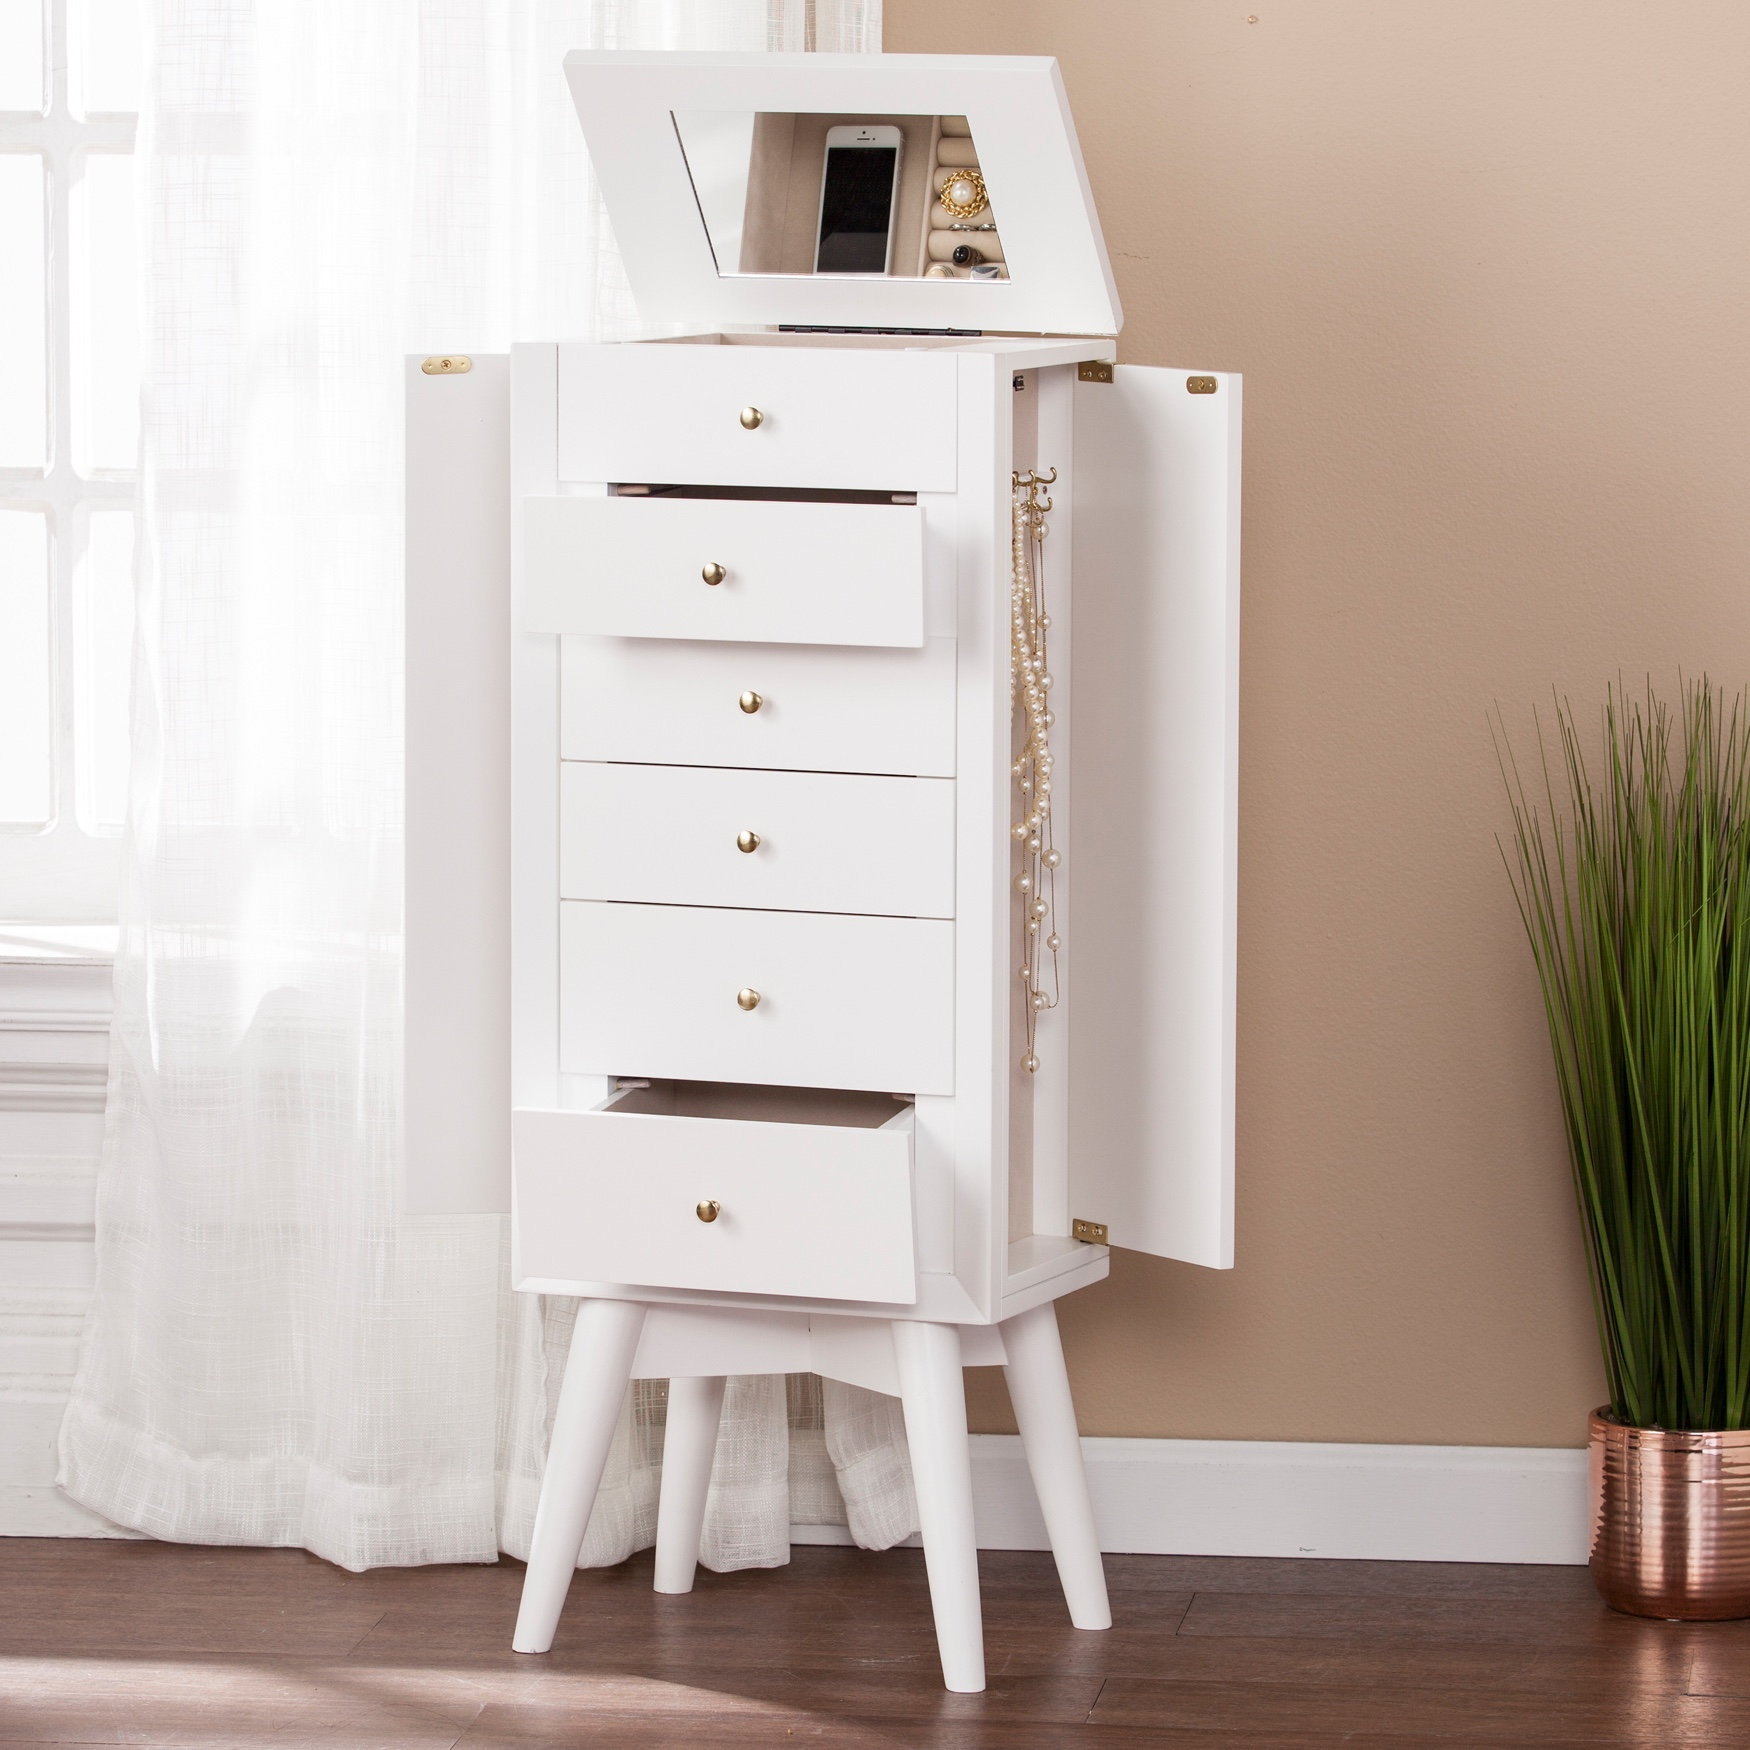 Wesley Jewelry Armoire, WHITE